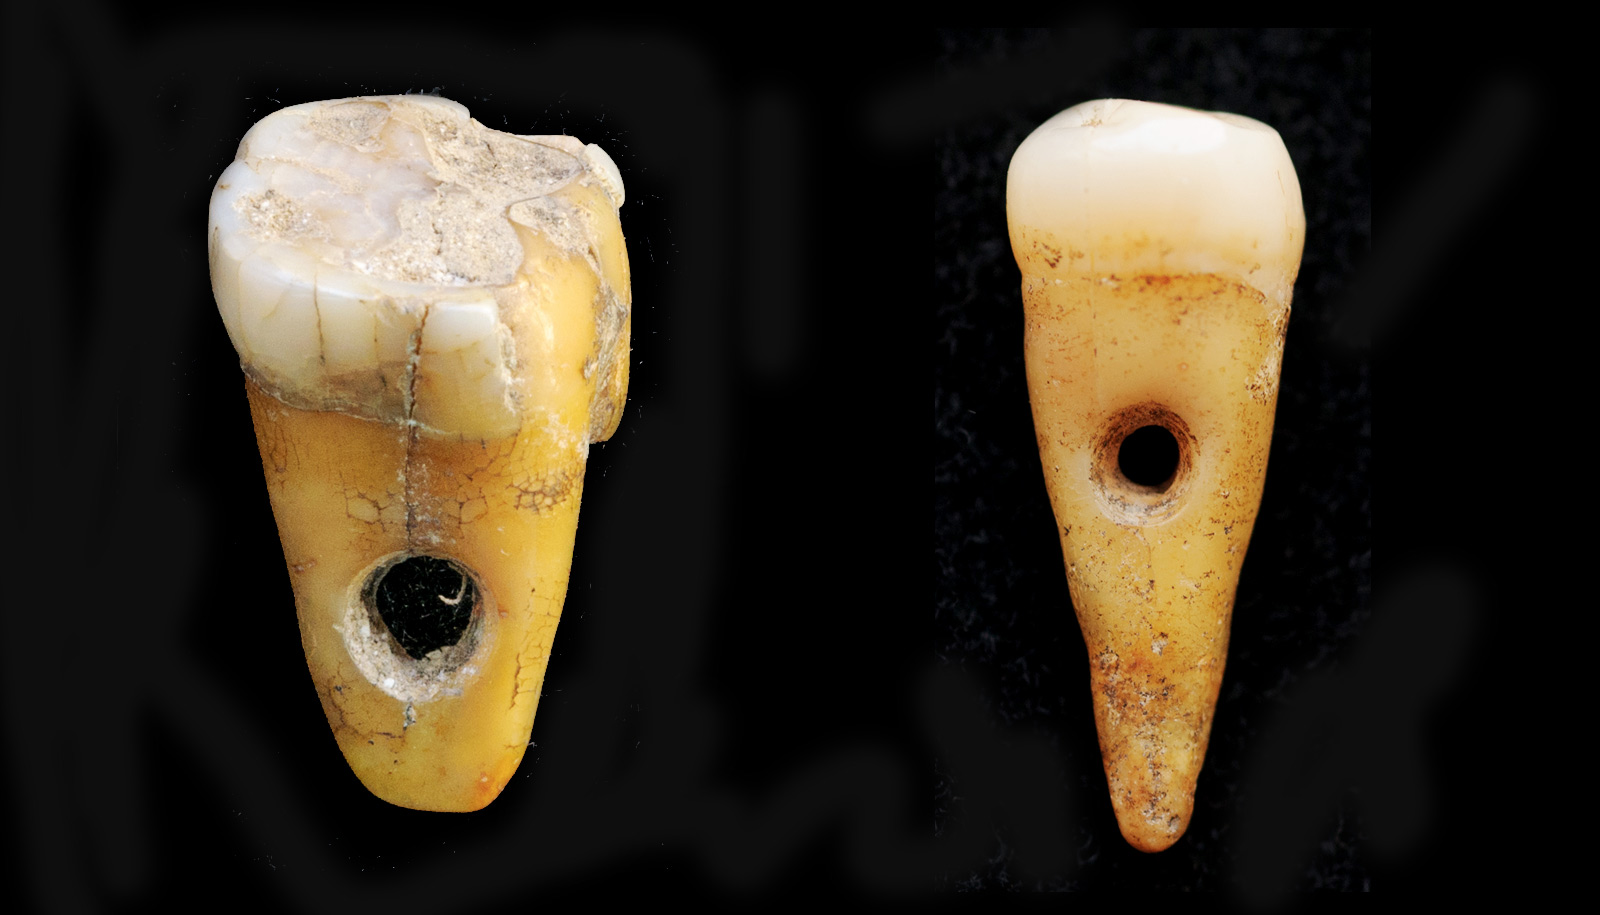 Two human teeth became jewelry in Neolithic Turkey